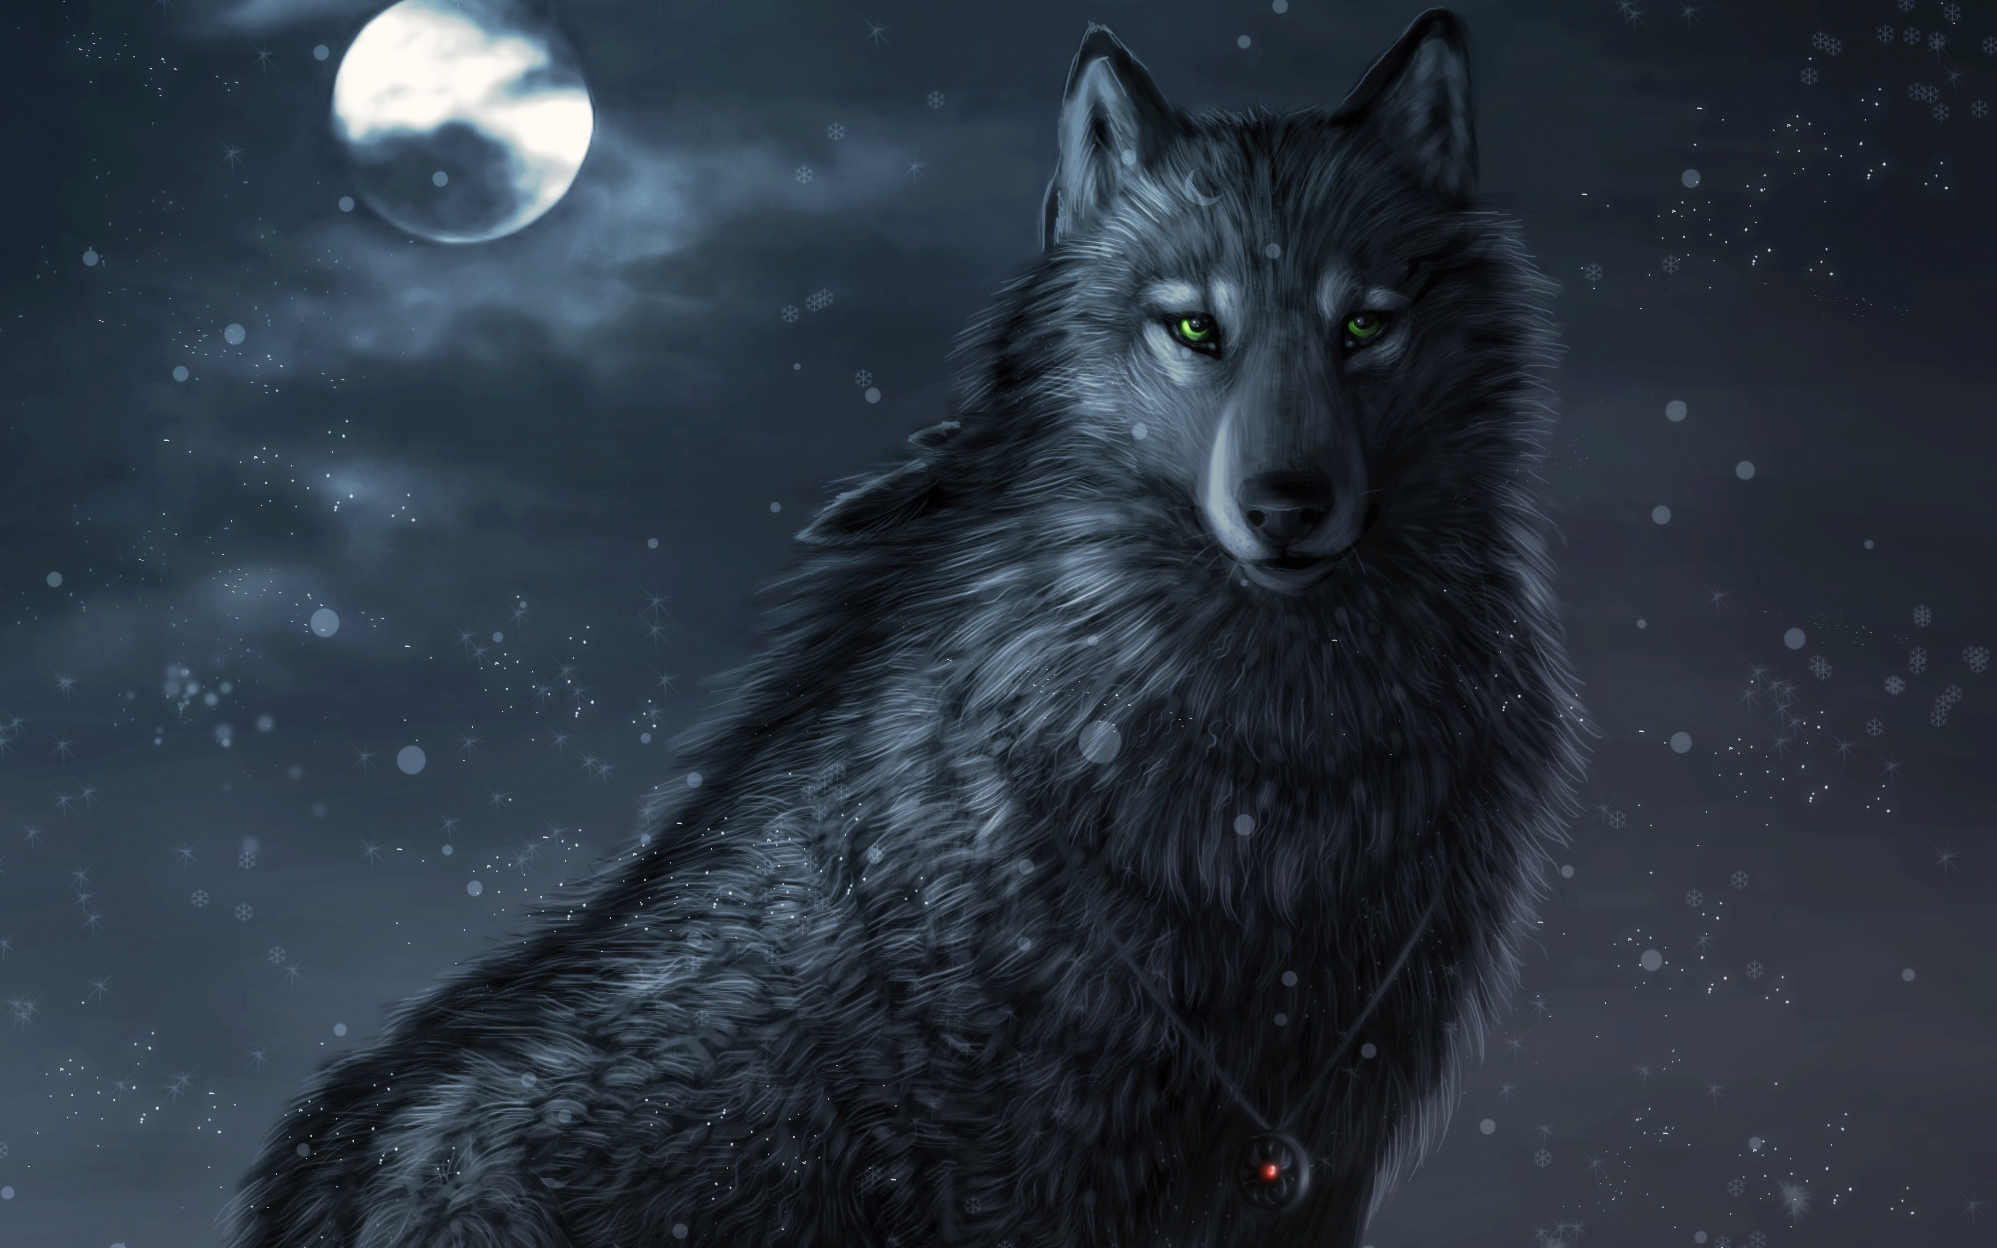 Wolf Wallpaper Hd,  Desktop Images of Wolf HD  Wolf HD Wallpapers 1997x1248